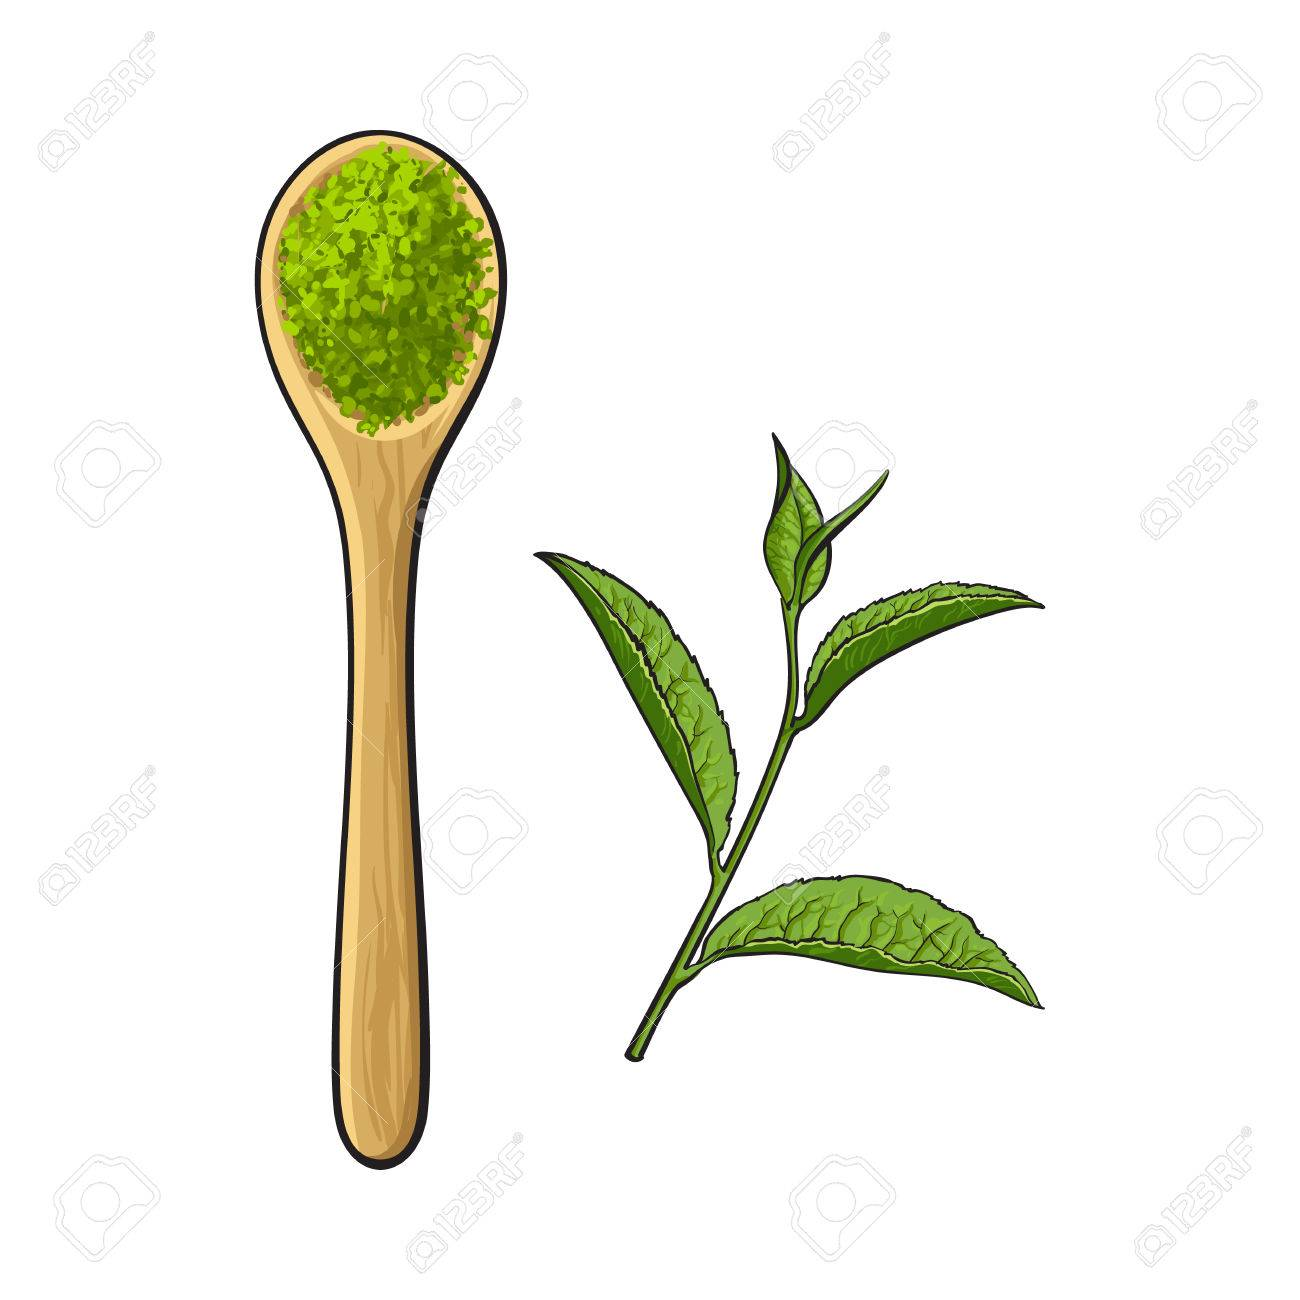 Top View Drawing Of Bamboo Wooden Spoon With Matcha Green Tea Royalty Free Cliparts Vectors And Stock Illustration Image 83305944